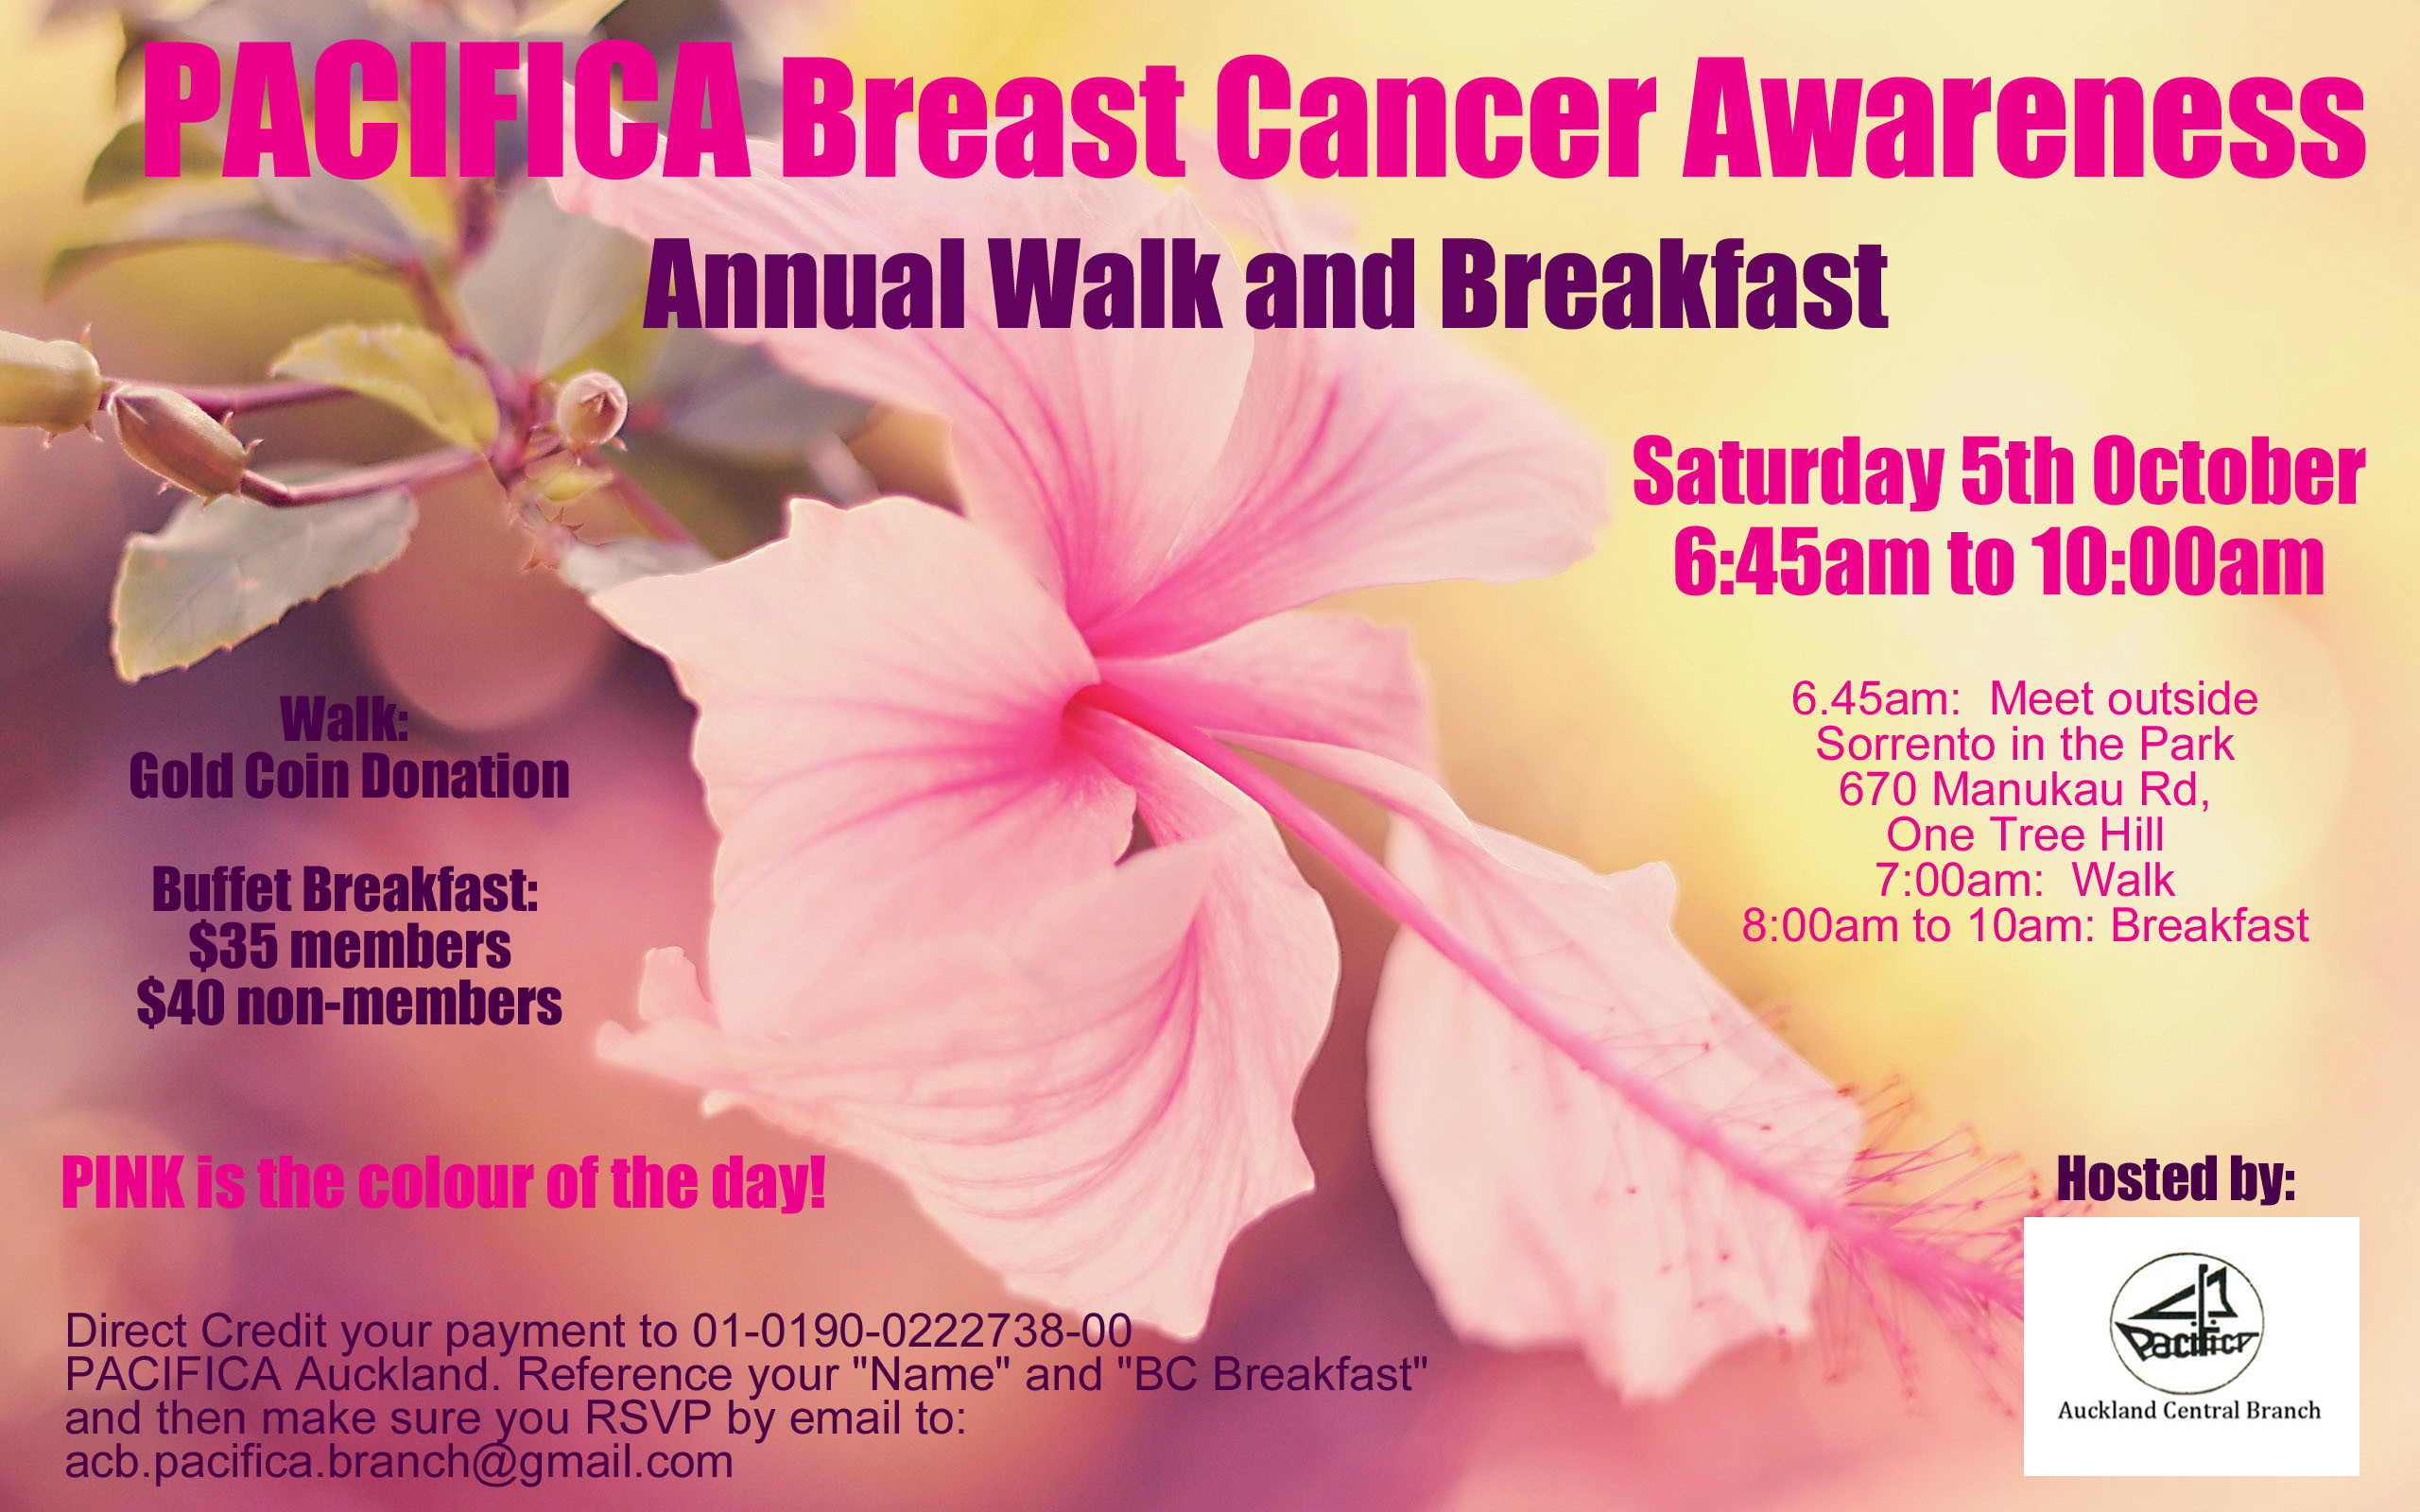 2560x1600 PACIFICA Breast Cancer Awareness Walk and Breakfast